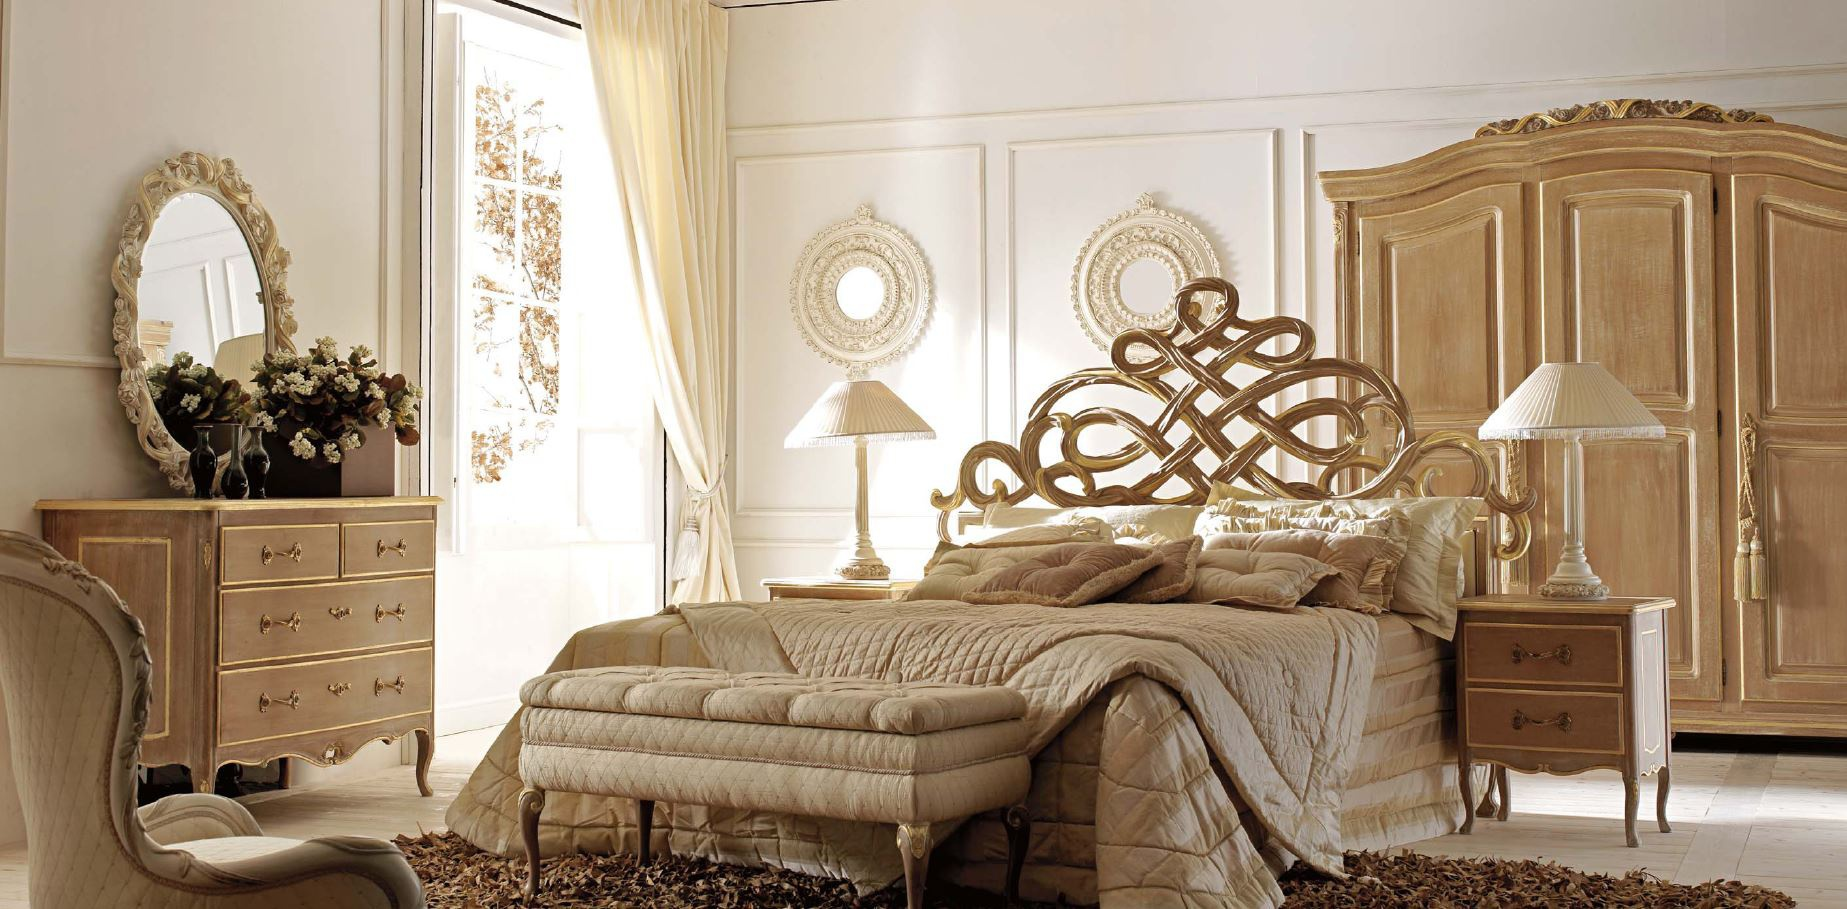 Double bed with sculpted headboard ambiente notte savio firmino luxury furniture mr - Savio firmino camerette ...